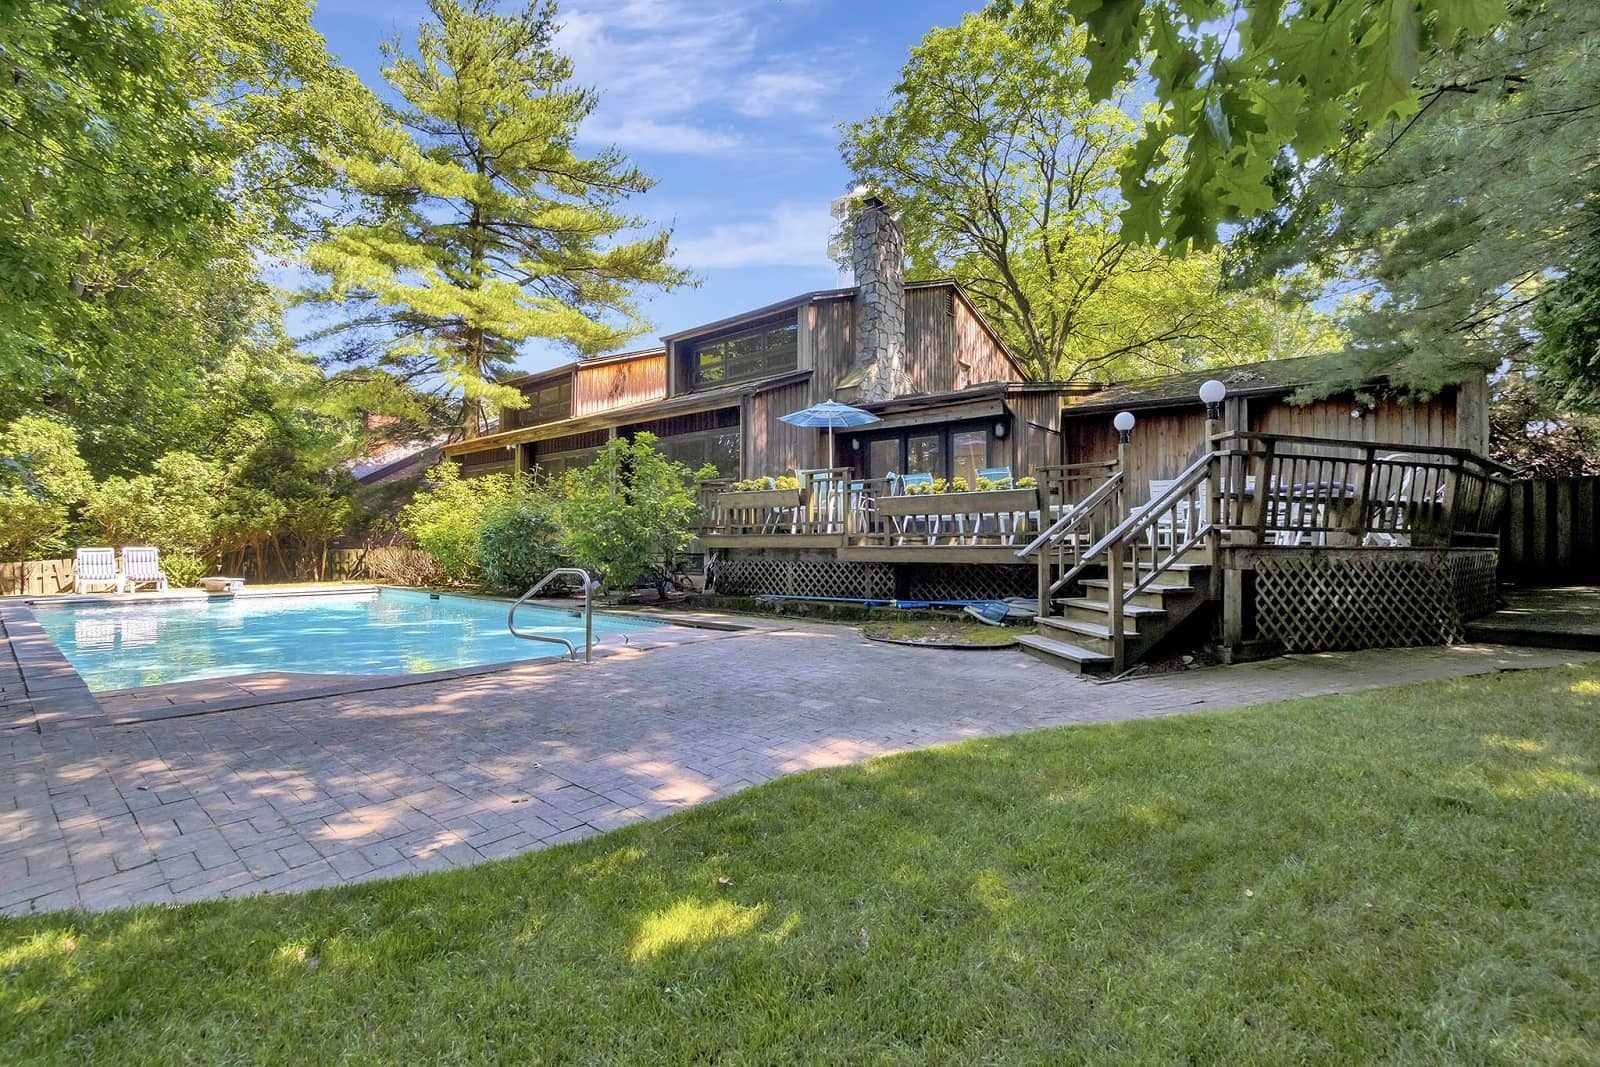 Real Estate Photography in Staten Island - New York - NY - USA - Front View